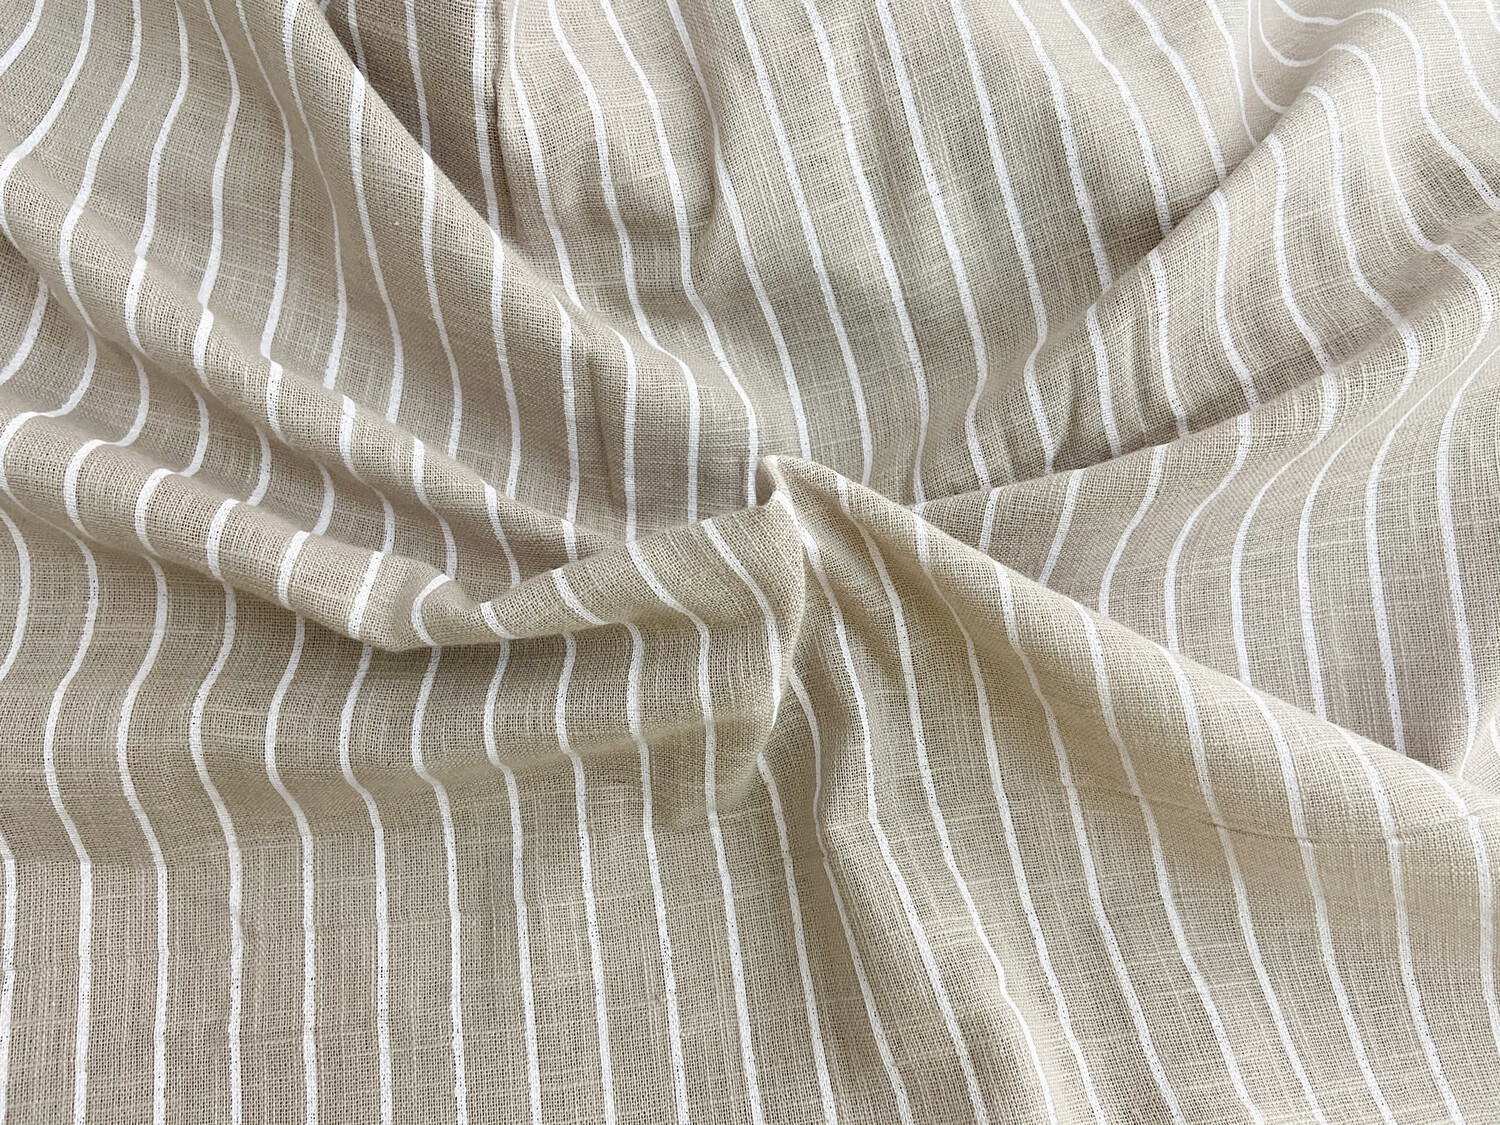 Grey Sandstone Linen Fabric, Striped Fabric, Dressmaking Sewing Quilting Fabrics, 44 Inch Wide, Sold by Half Yard